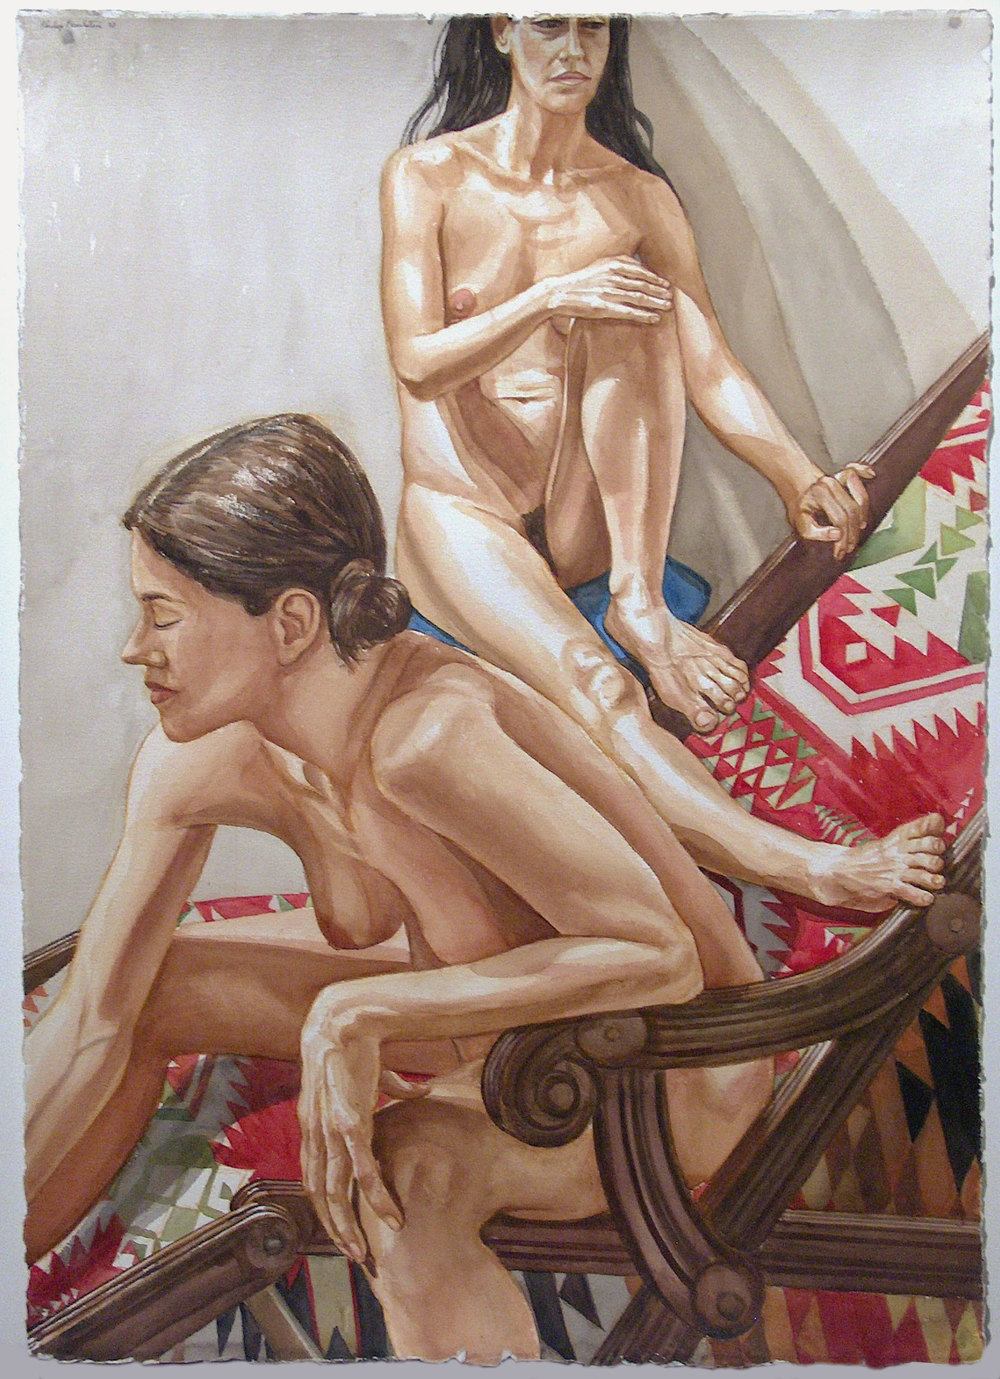 TWO MODELS AND A WOOD BEACHCHAIR , 2002-2003 Watercolor on paper 41 1/2 x 29 5/8 inches